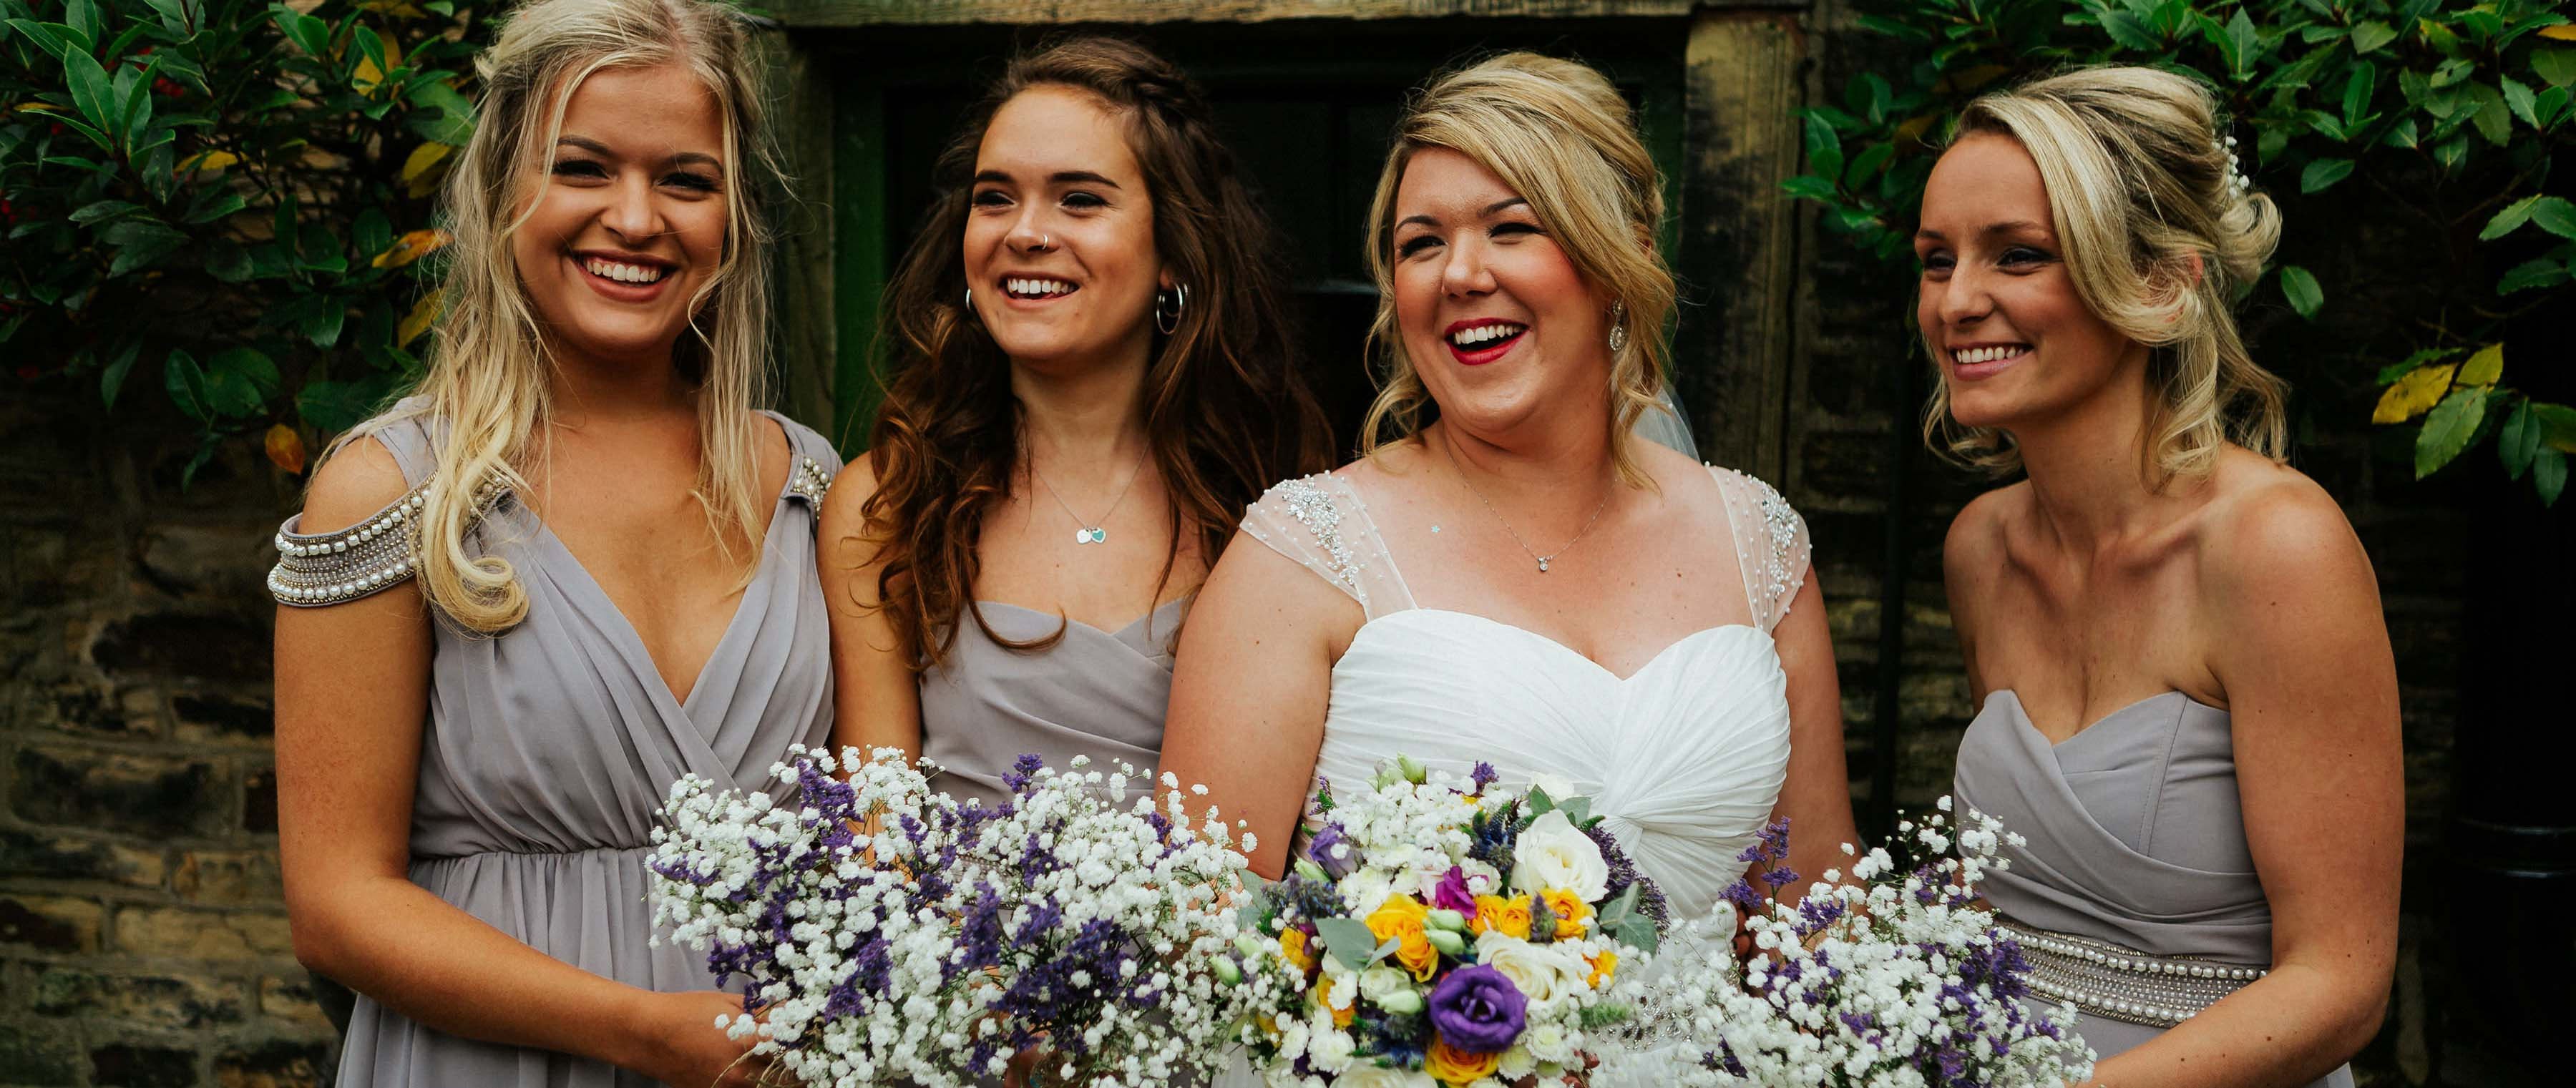 bridesmaids laugh together